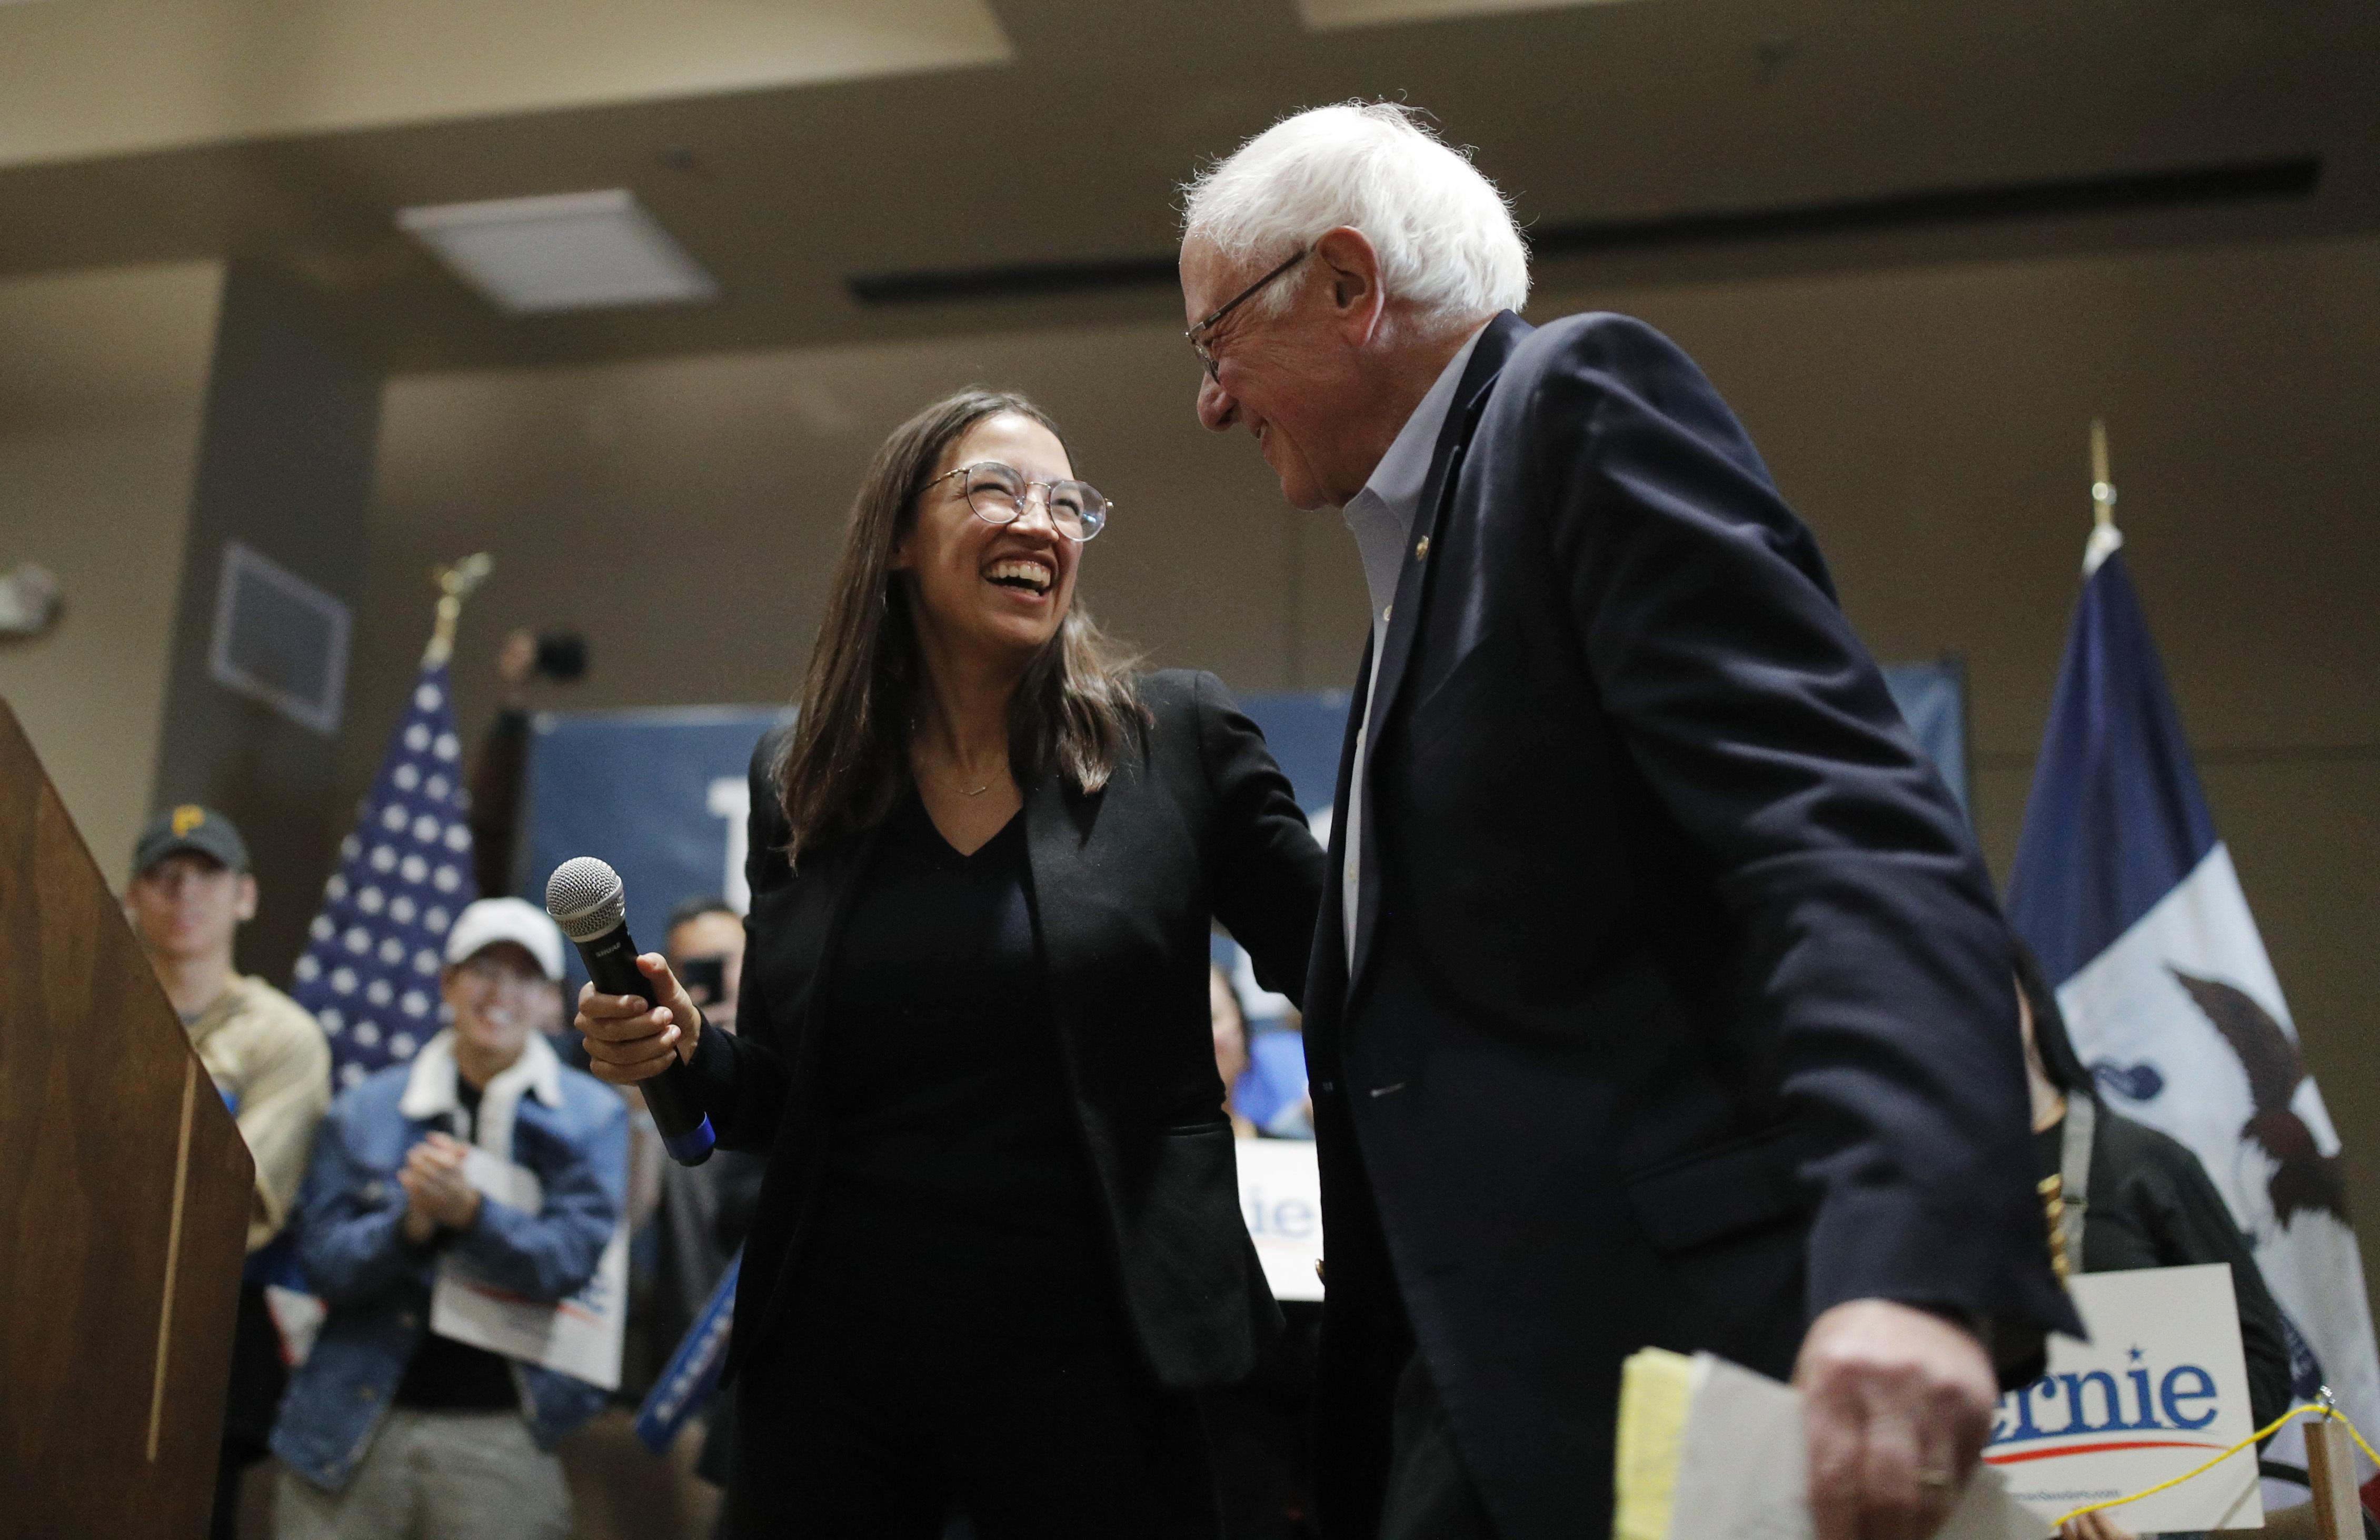 I thought Bernie's Iowa numbers seemed unrealistically high. Then I saw his rallies